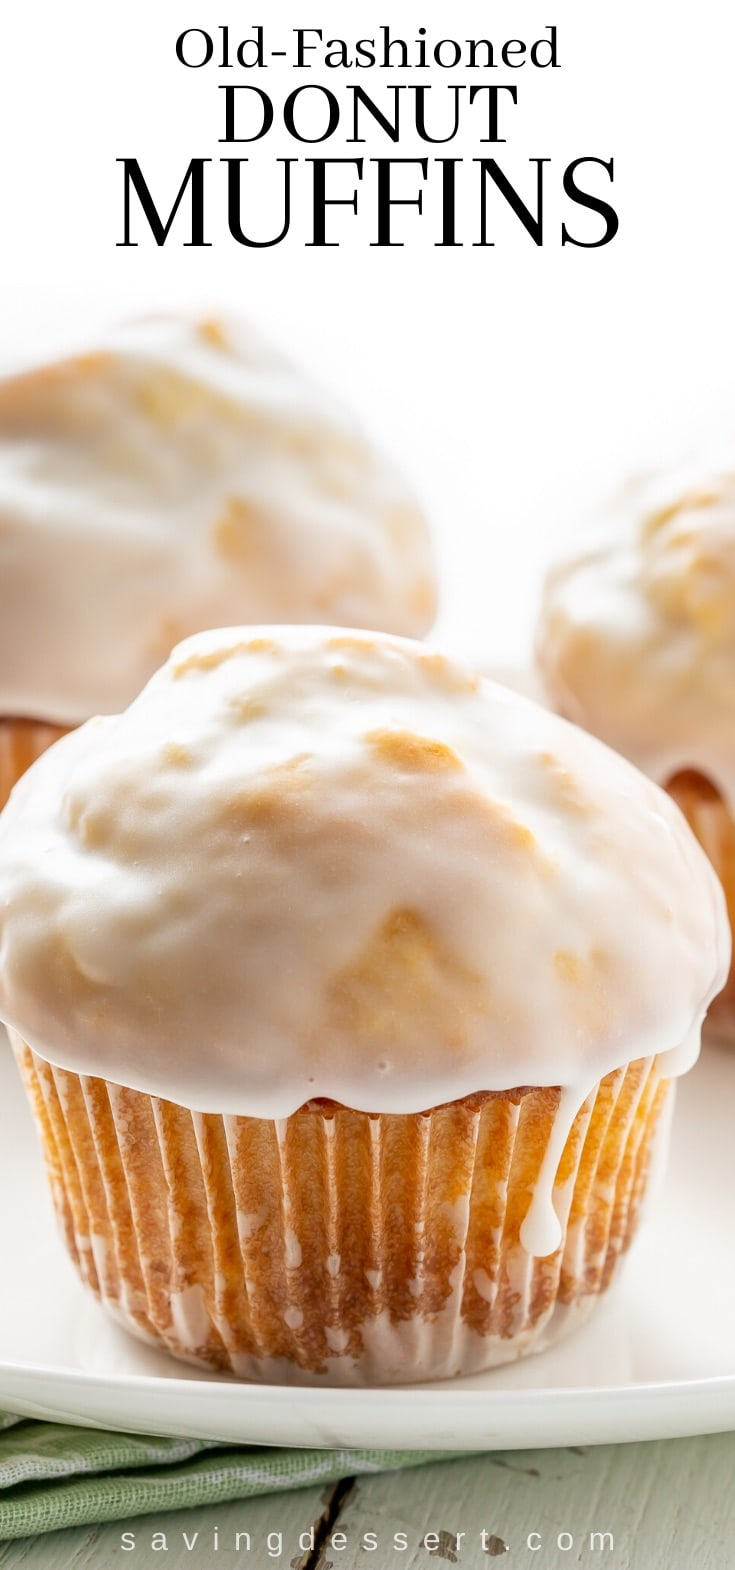 Old fashioned donut muffins on a plate with a drip of vanilla glaze on the side